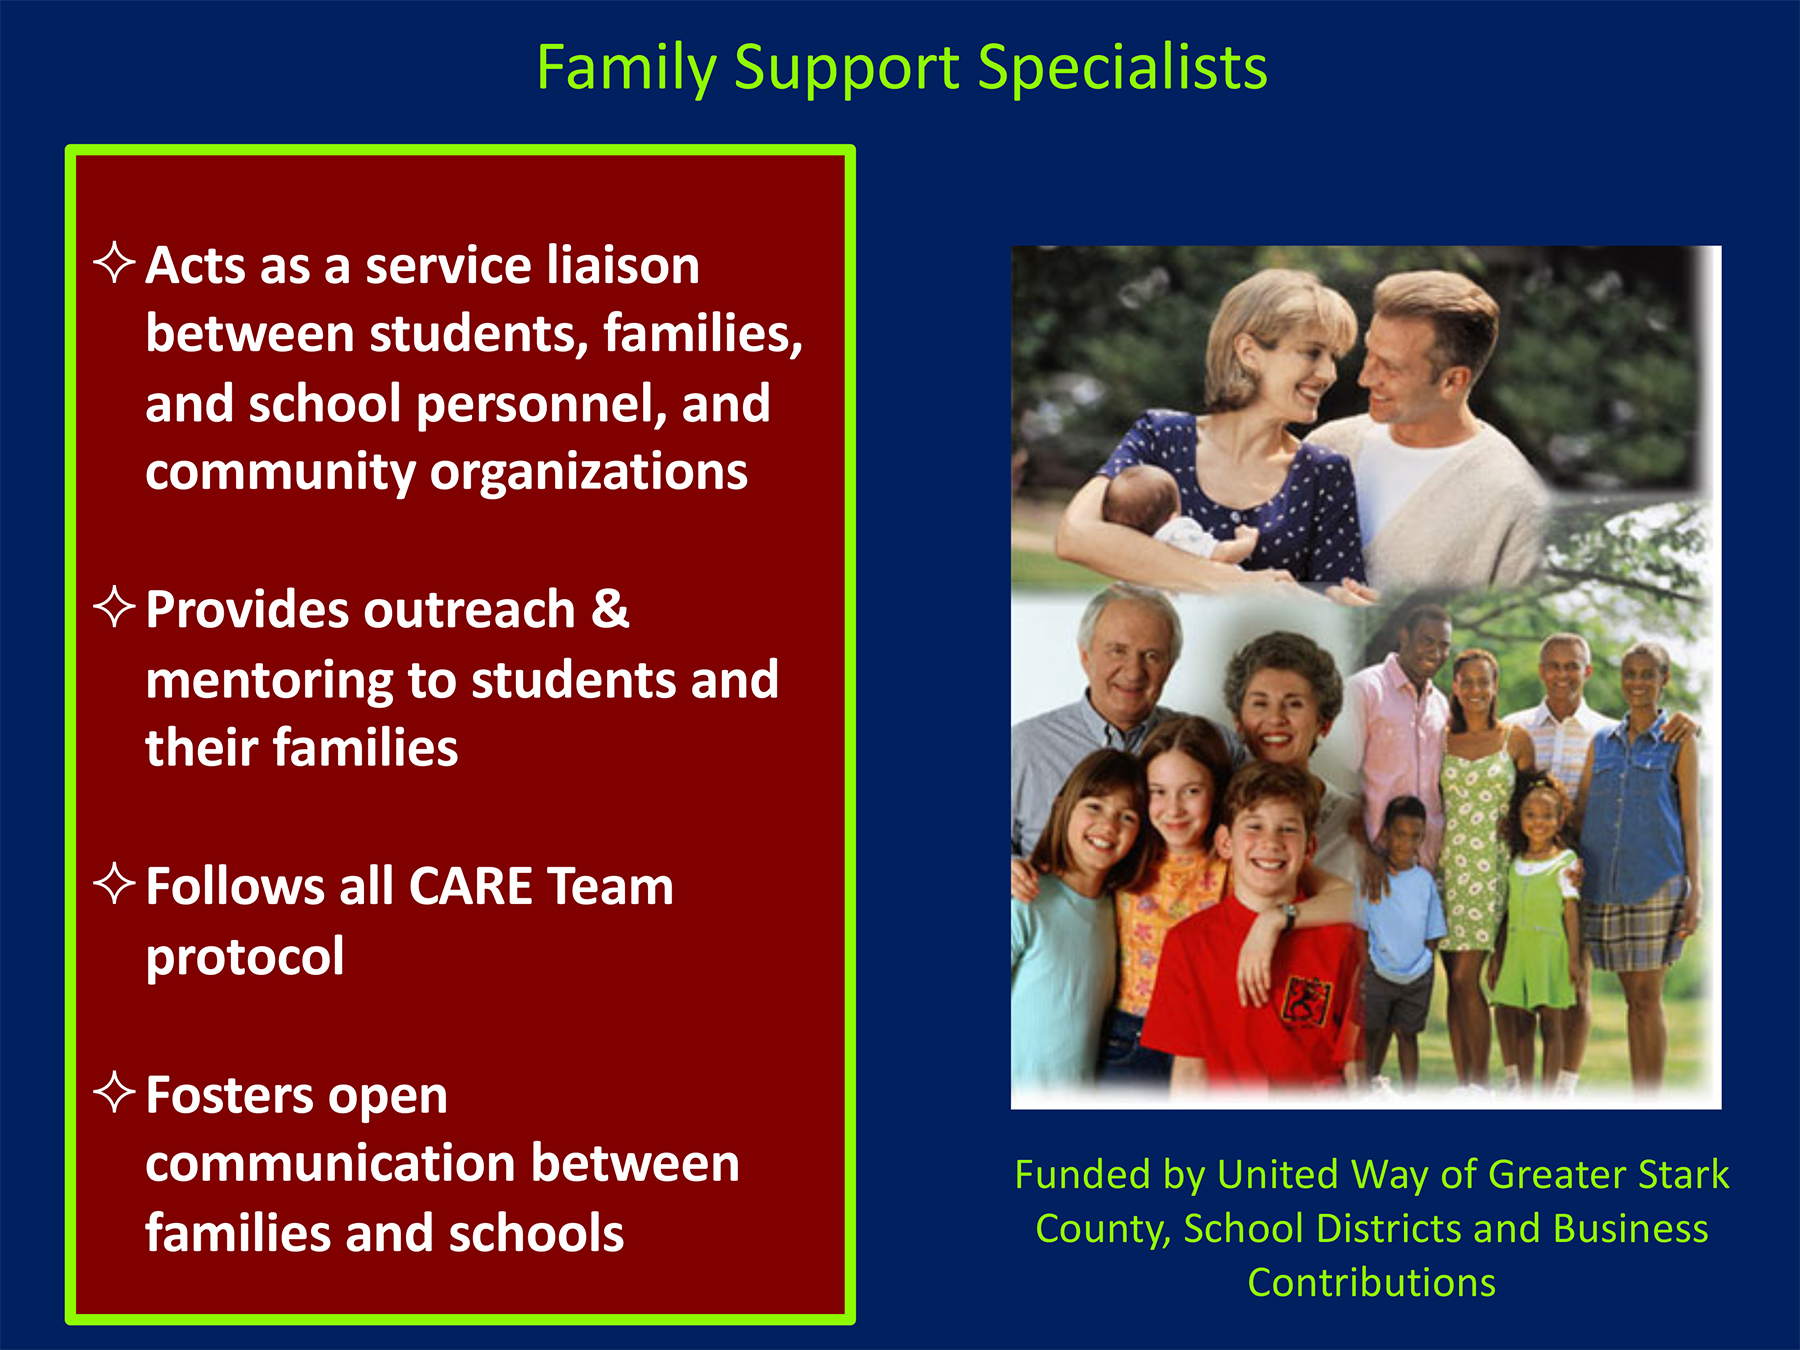 Family Support Specialists role